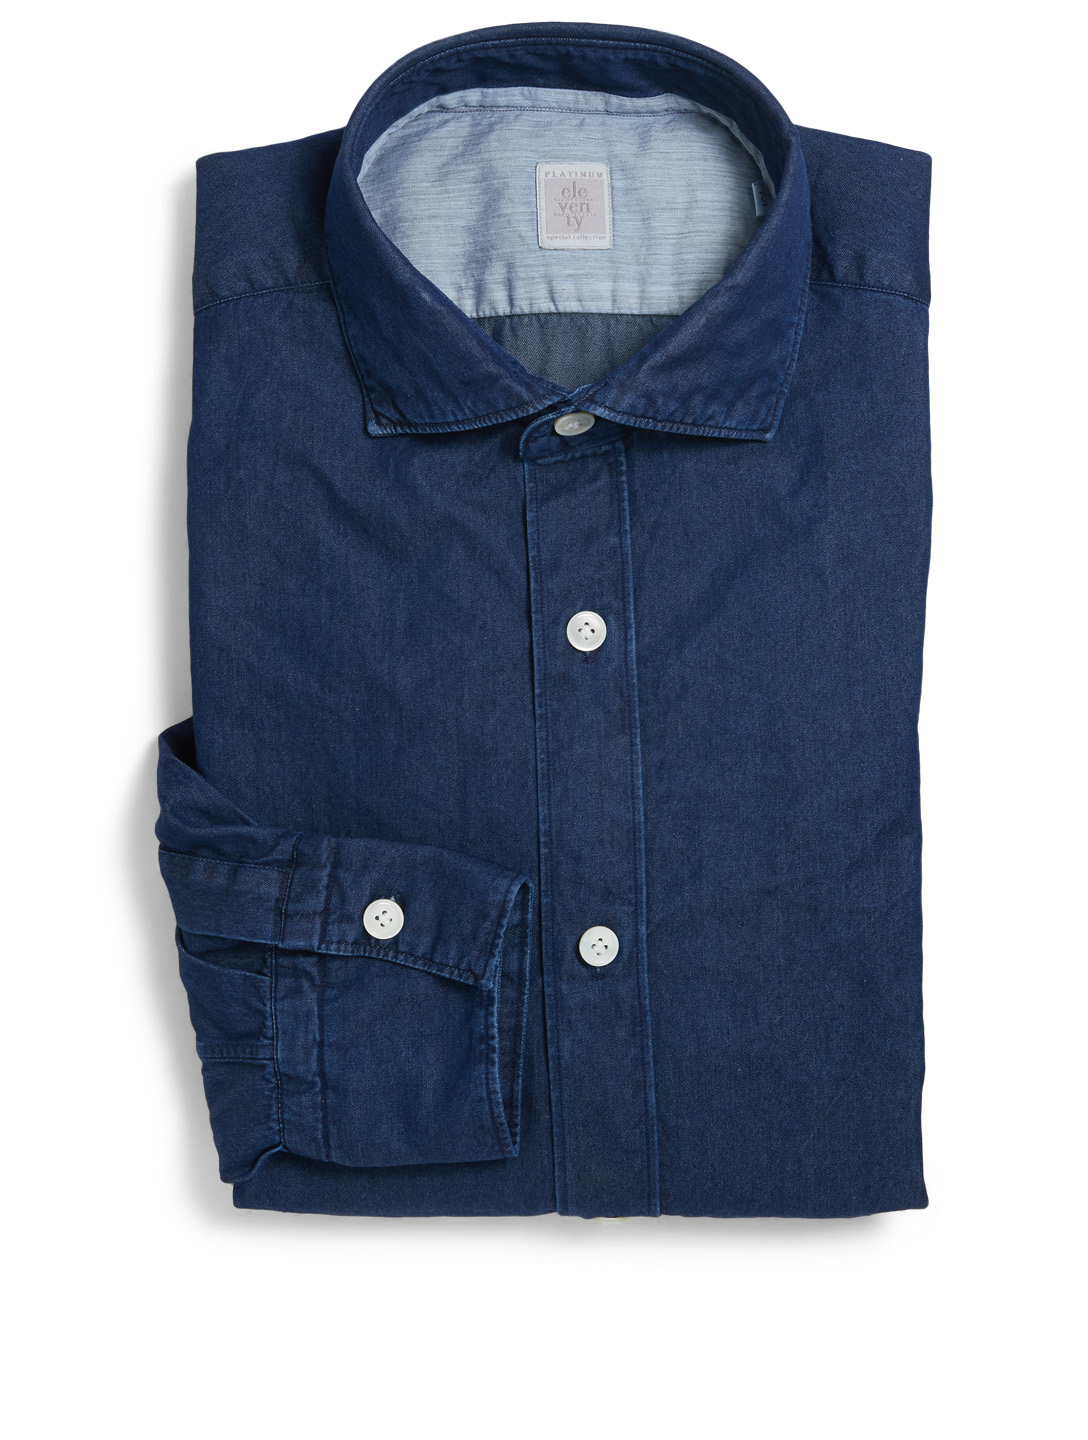 ELEVENTY Dandy Chambray Shirt Men's Blue